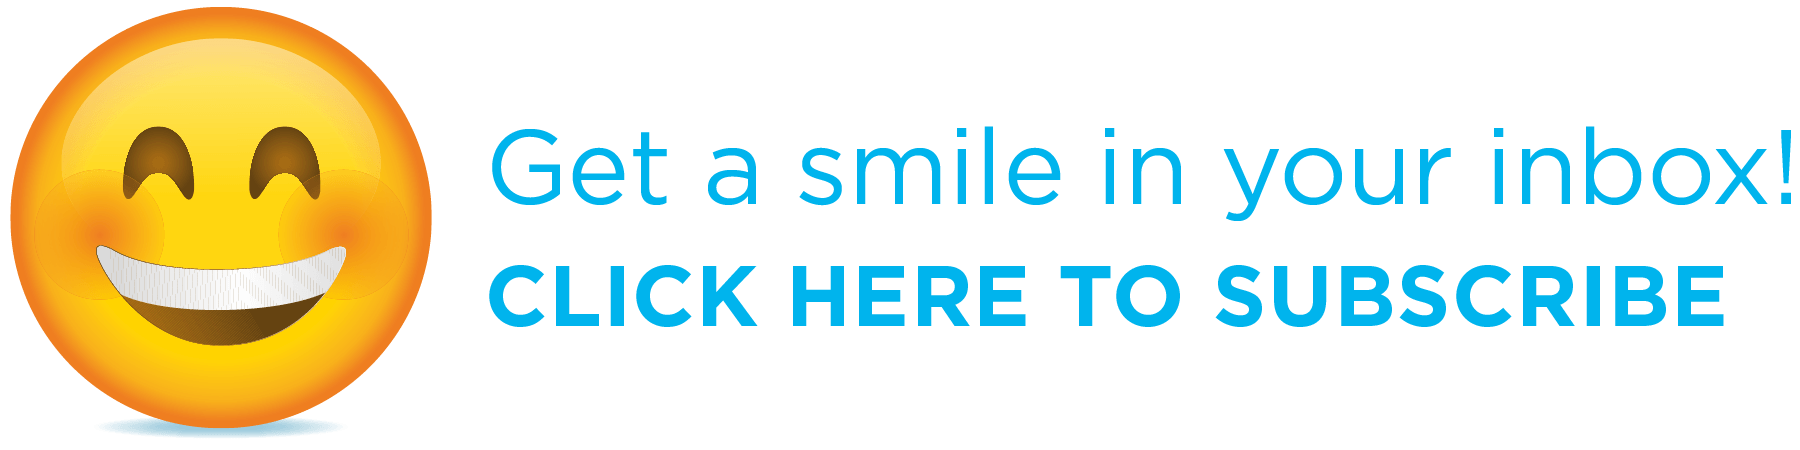 Get a smile in your inbox! Click here to subscribe.